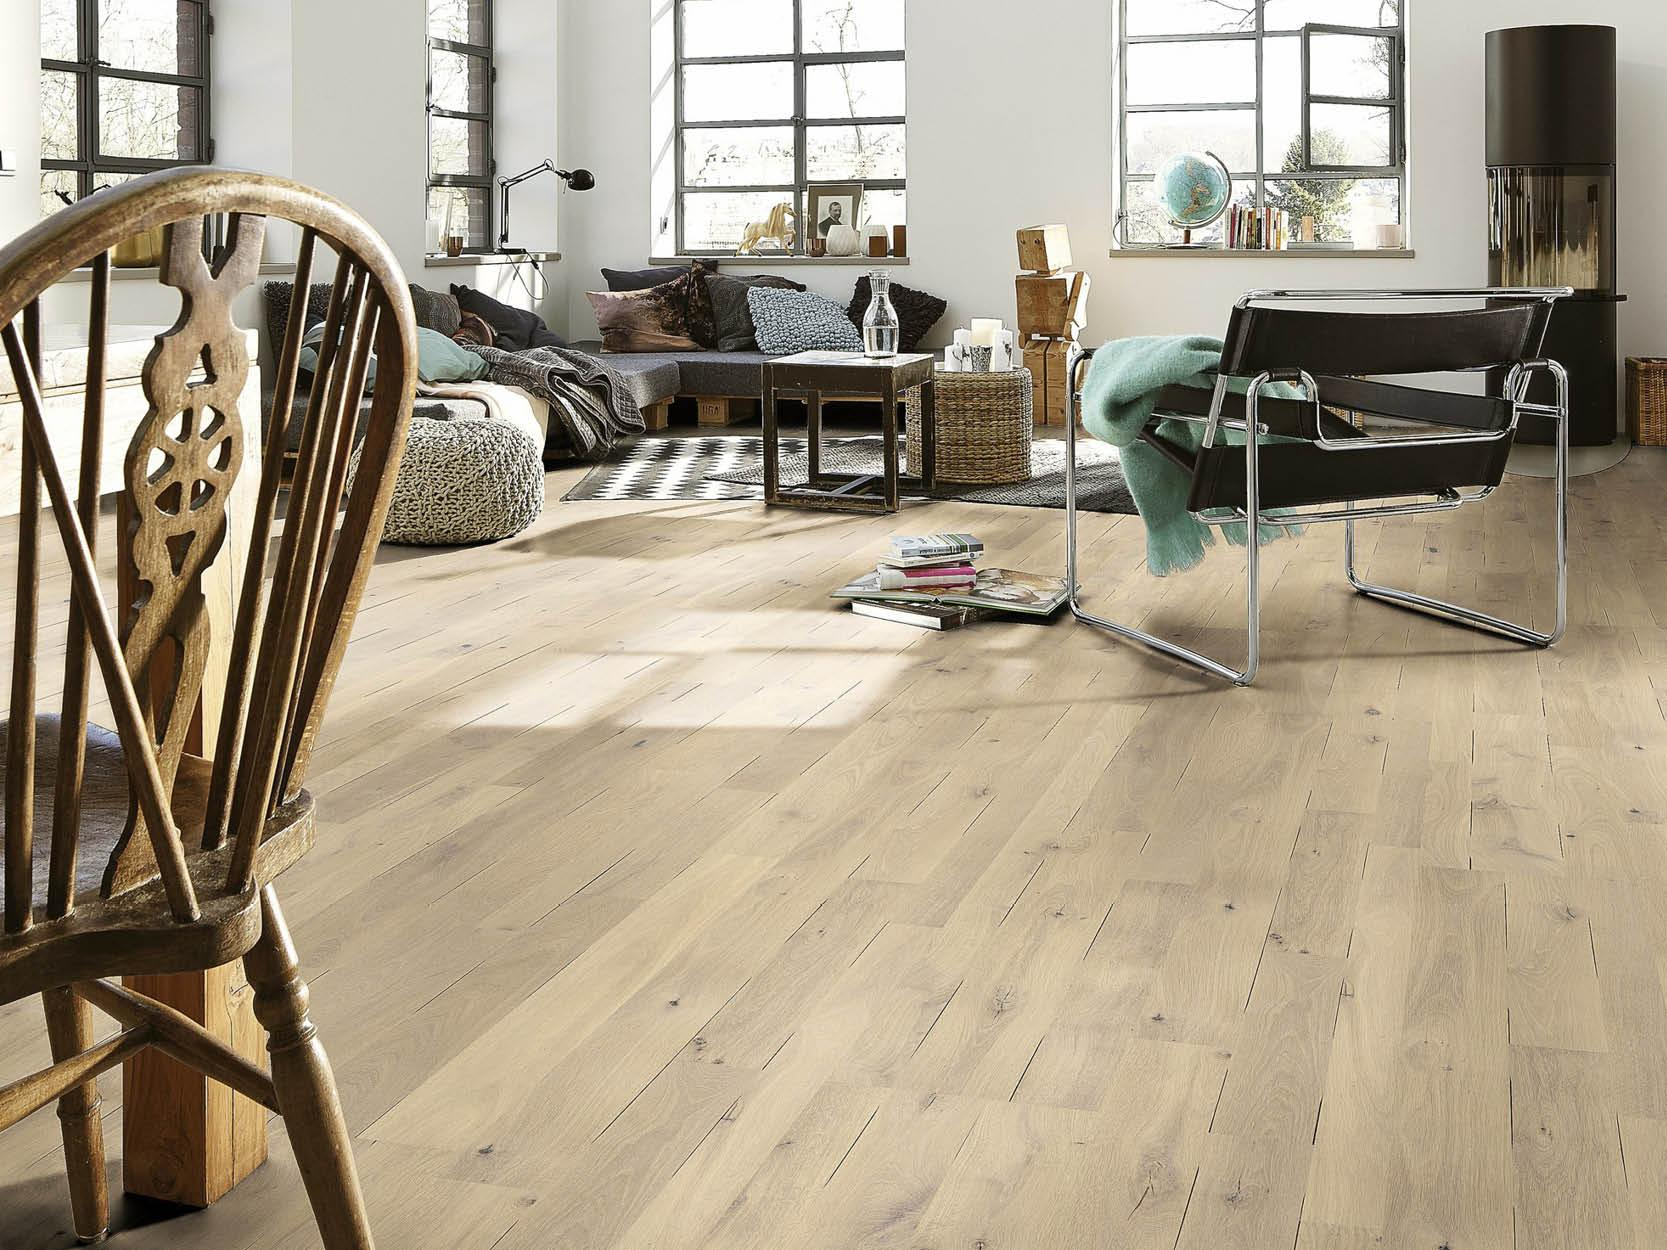 Meister's Engineered Oak Rustic Planked Parquet in Pure Oak Country